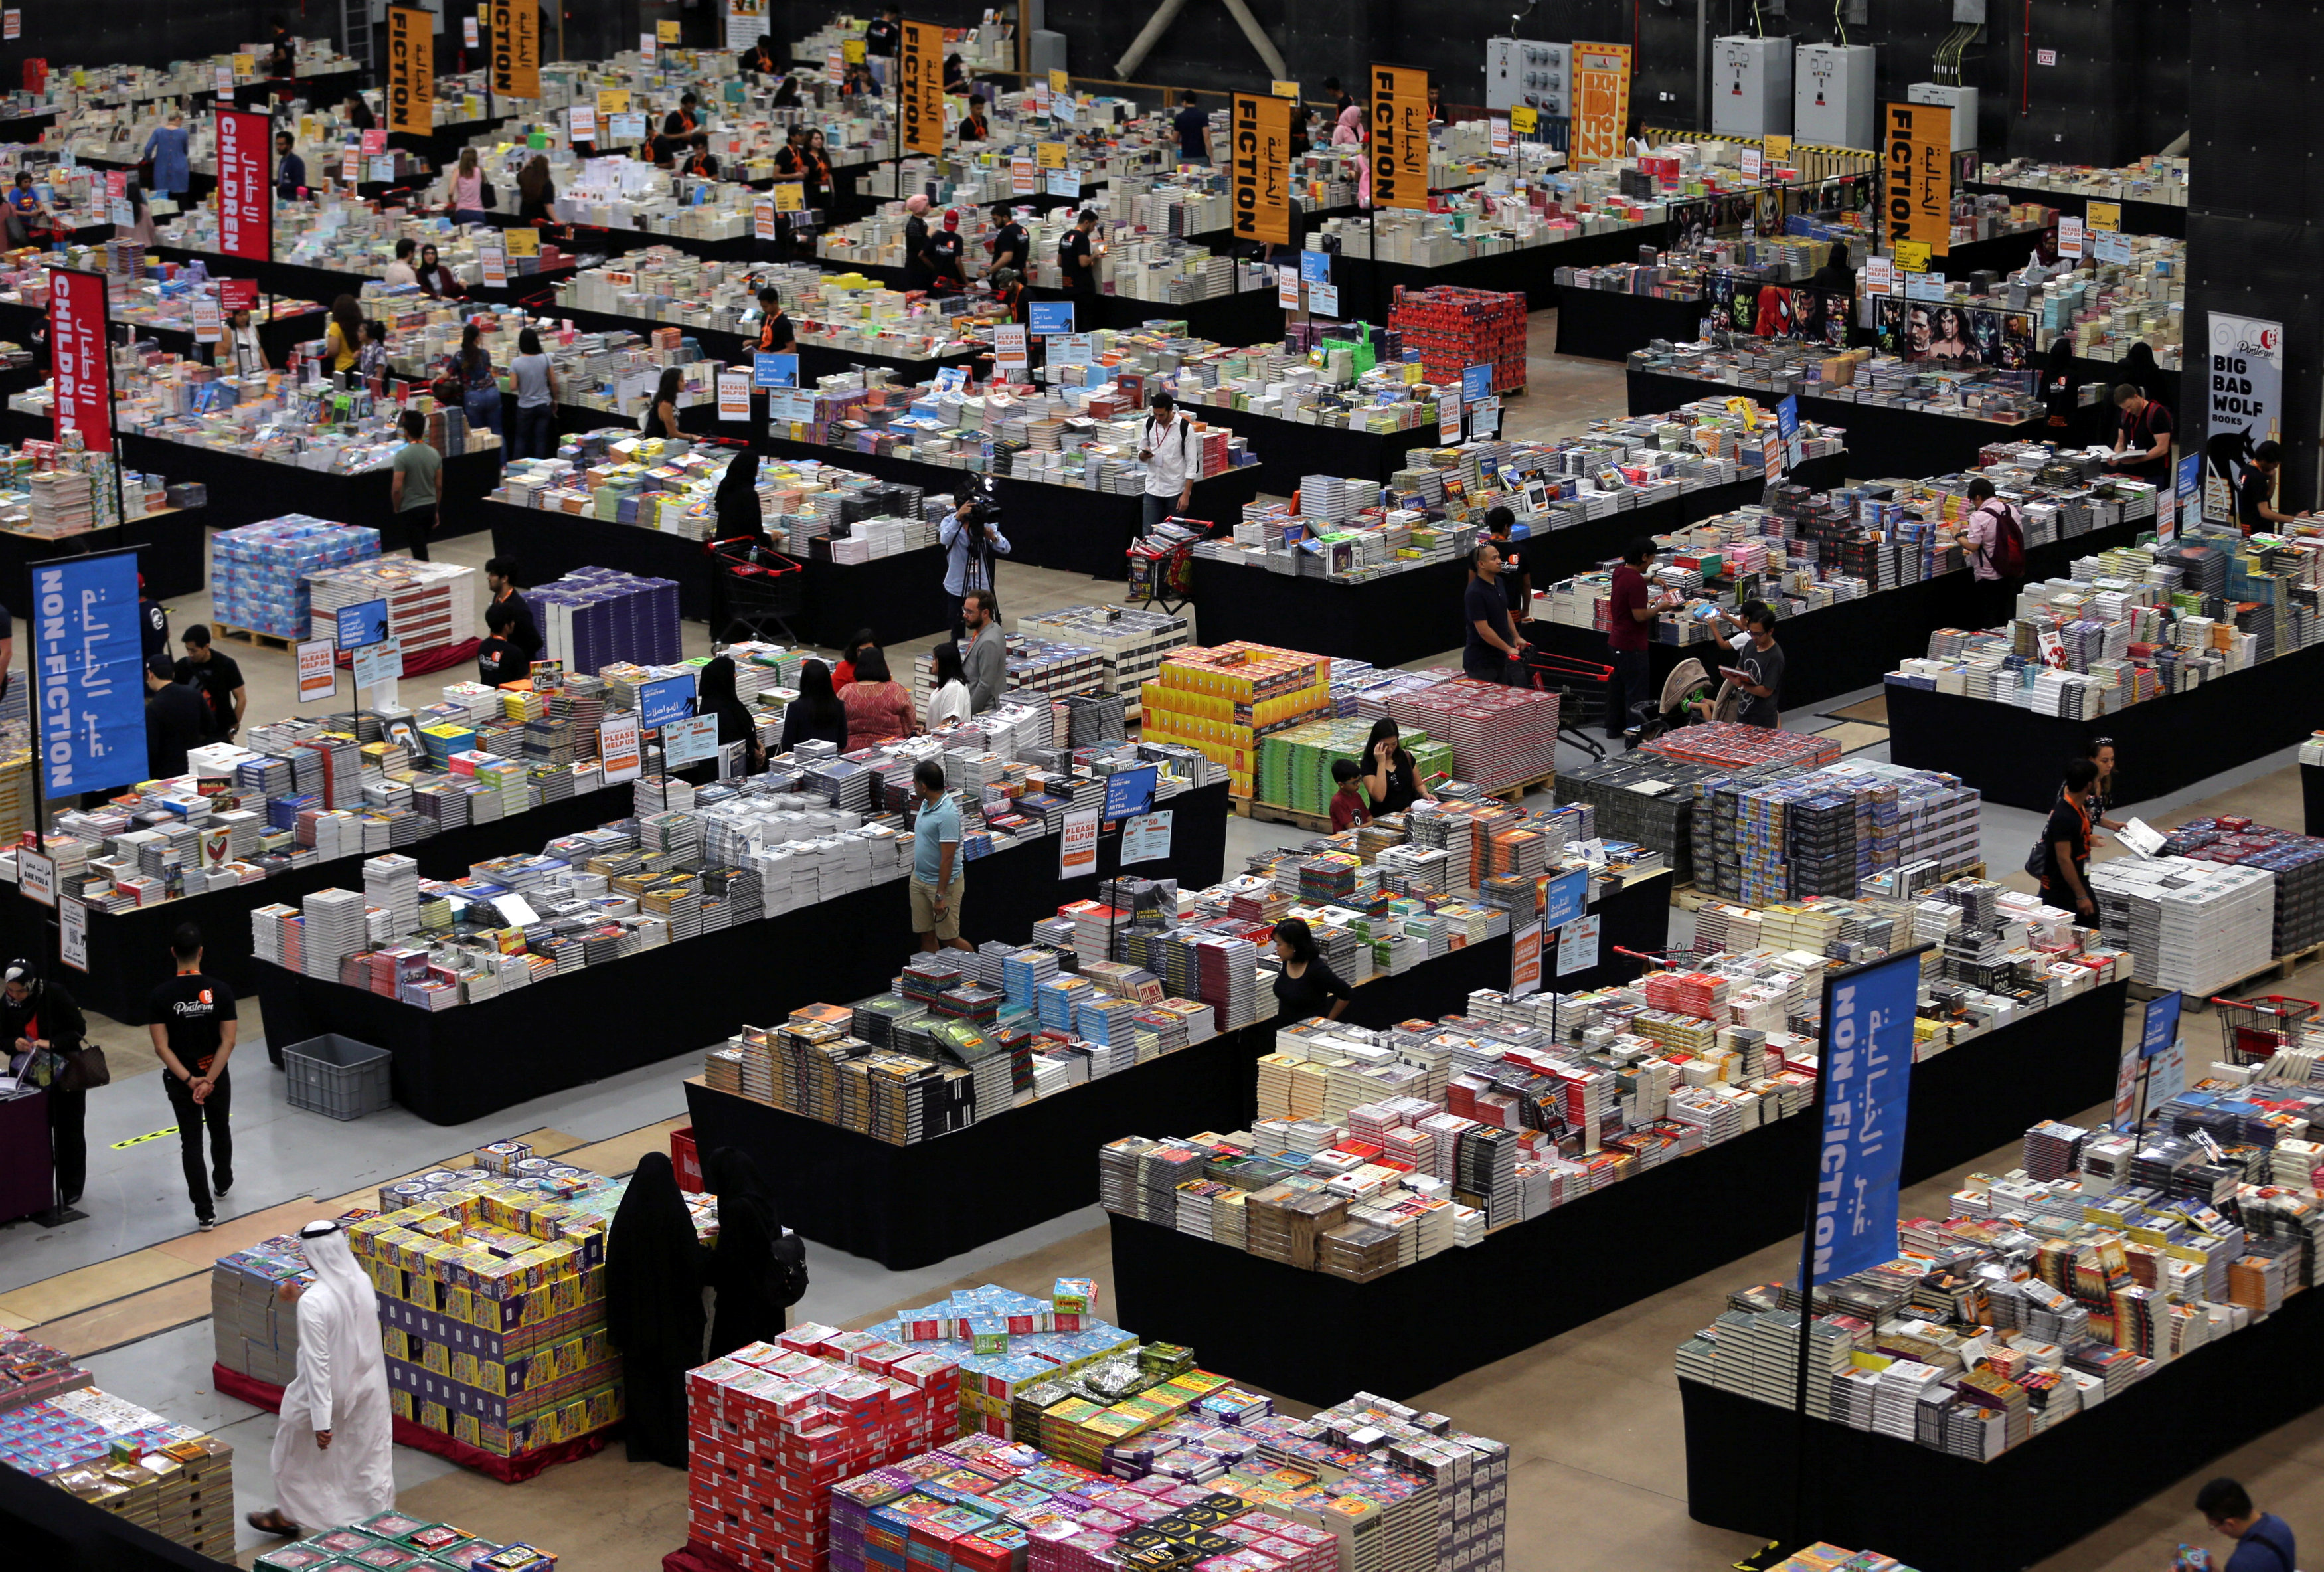 The Big Bad Wolf Book Sale, which calls itself the world's biggest, opens its doors to visitors in Dubai